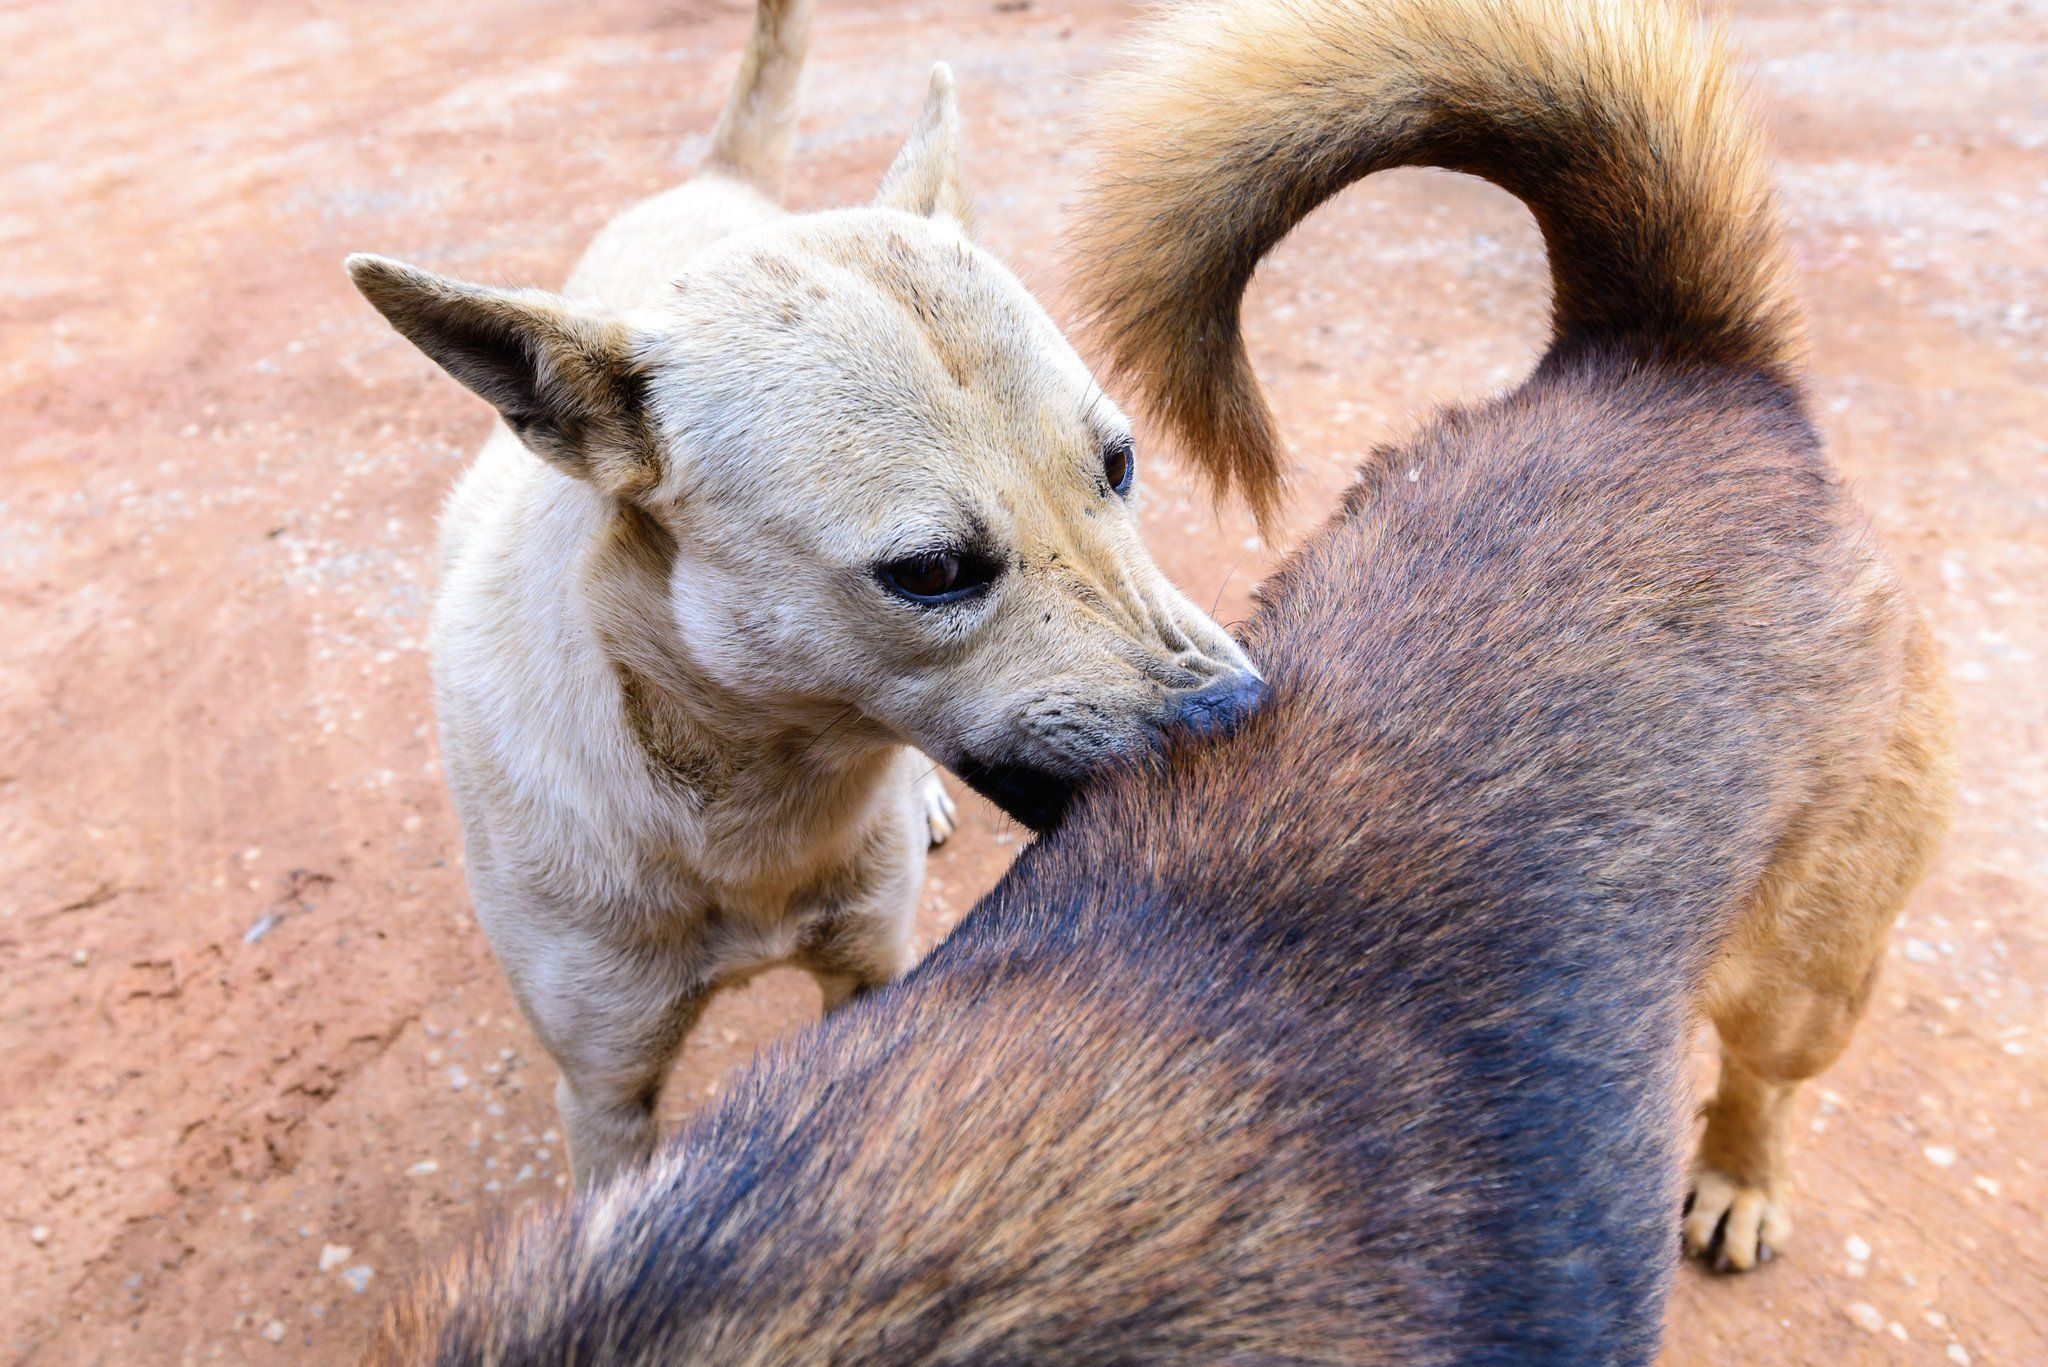 10 wild and crazy facts about fleas and dogs